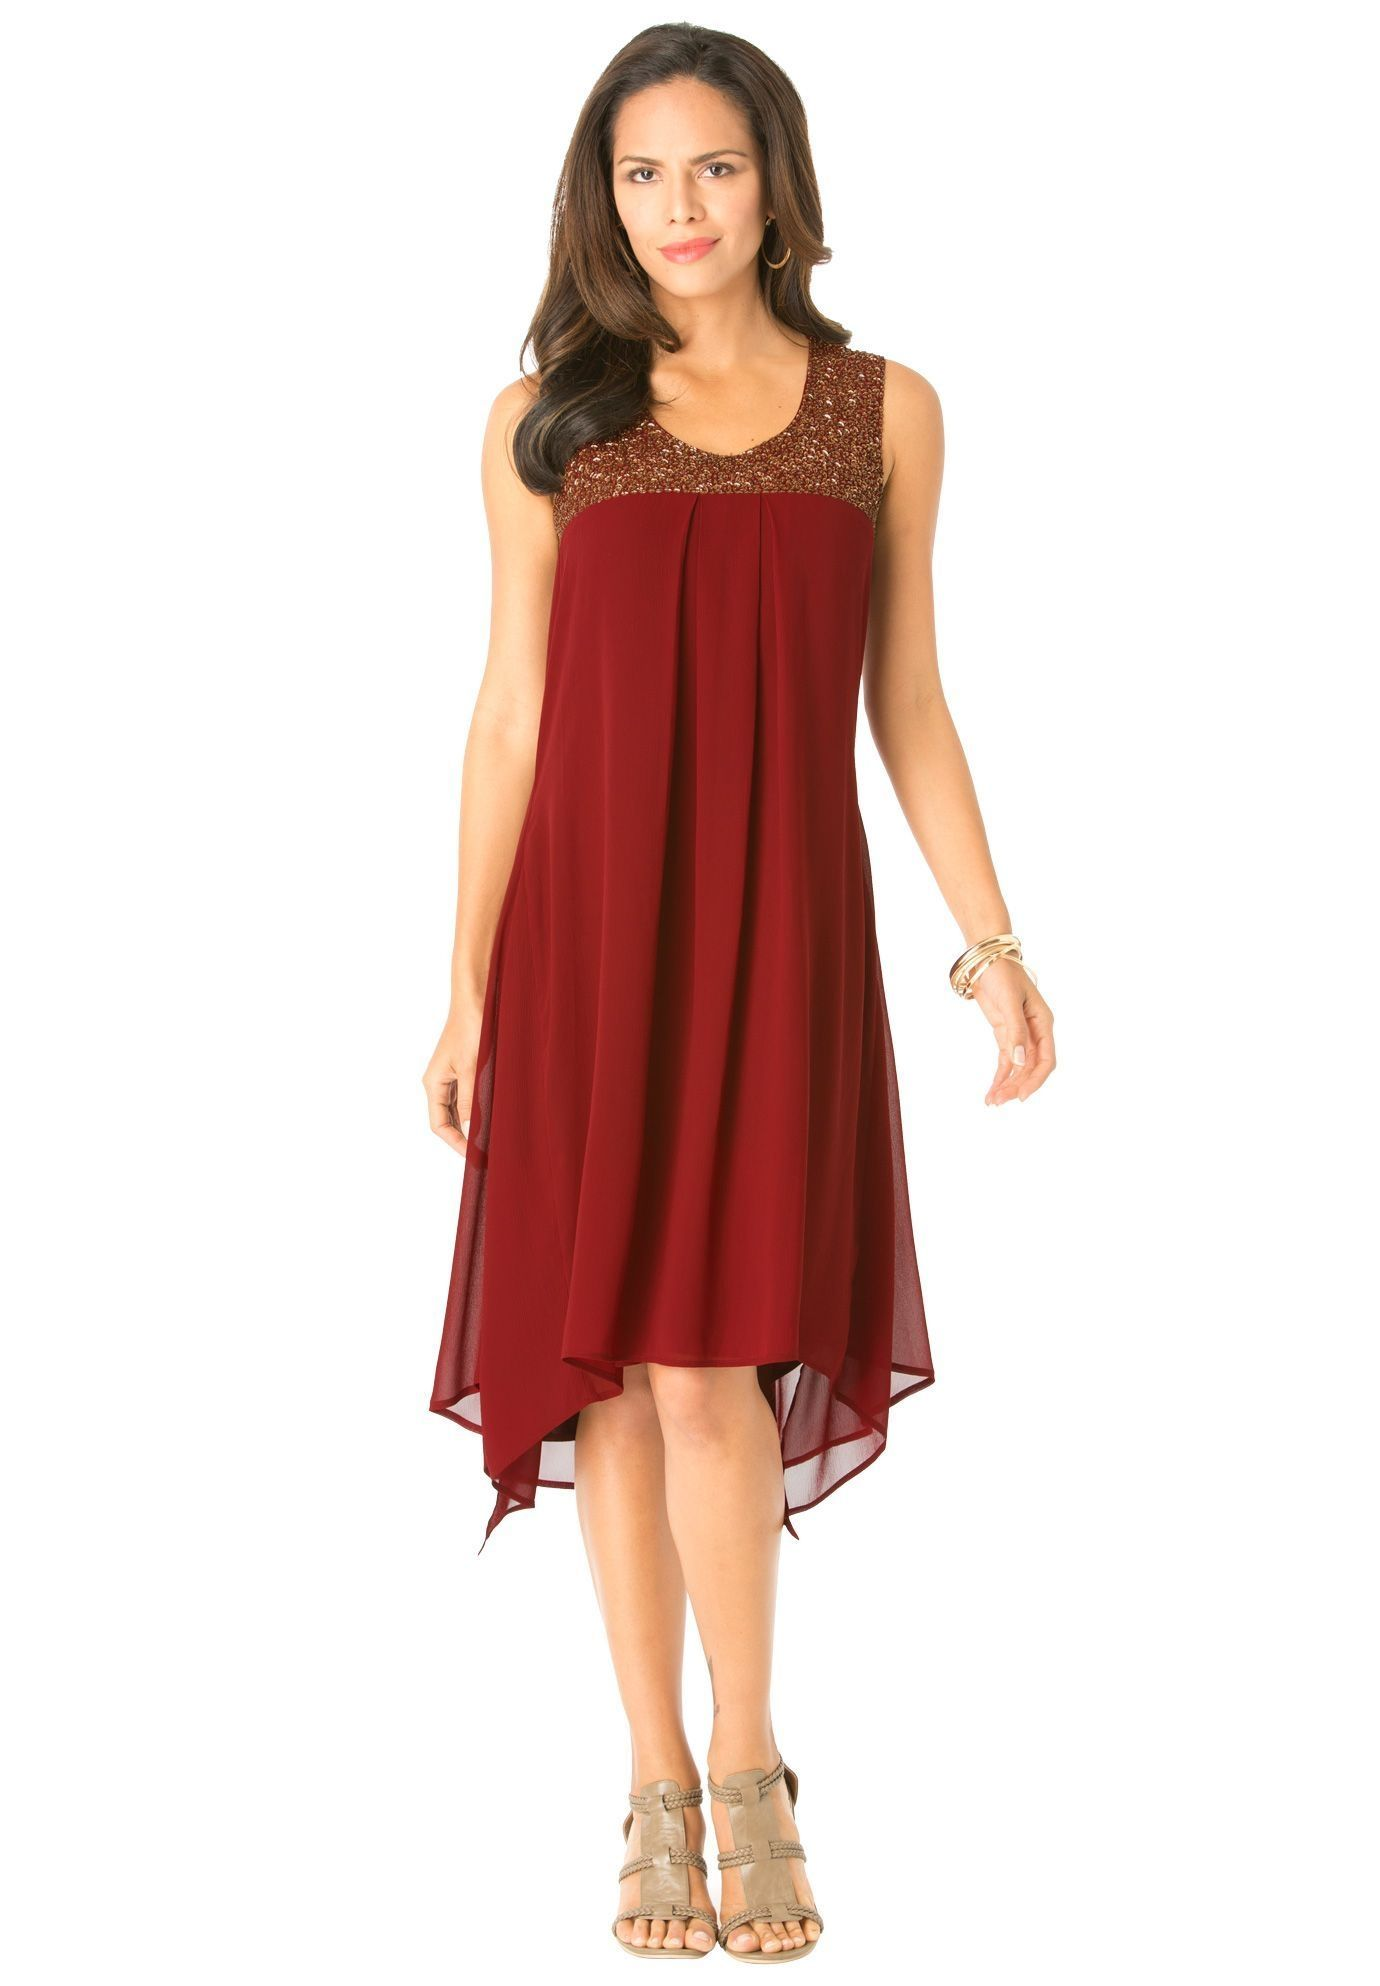 2c7937a589c Nice 41 Casual Dress Plus Size for Women Over 40 this Fall Winter http